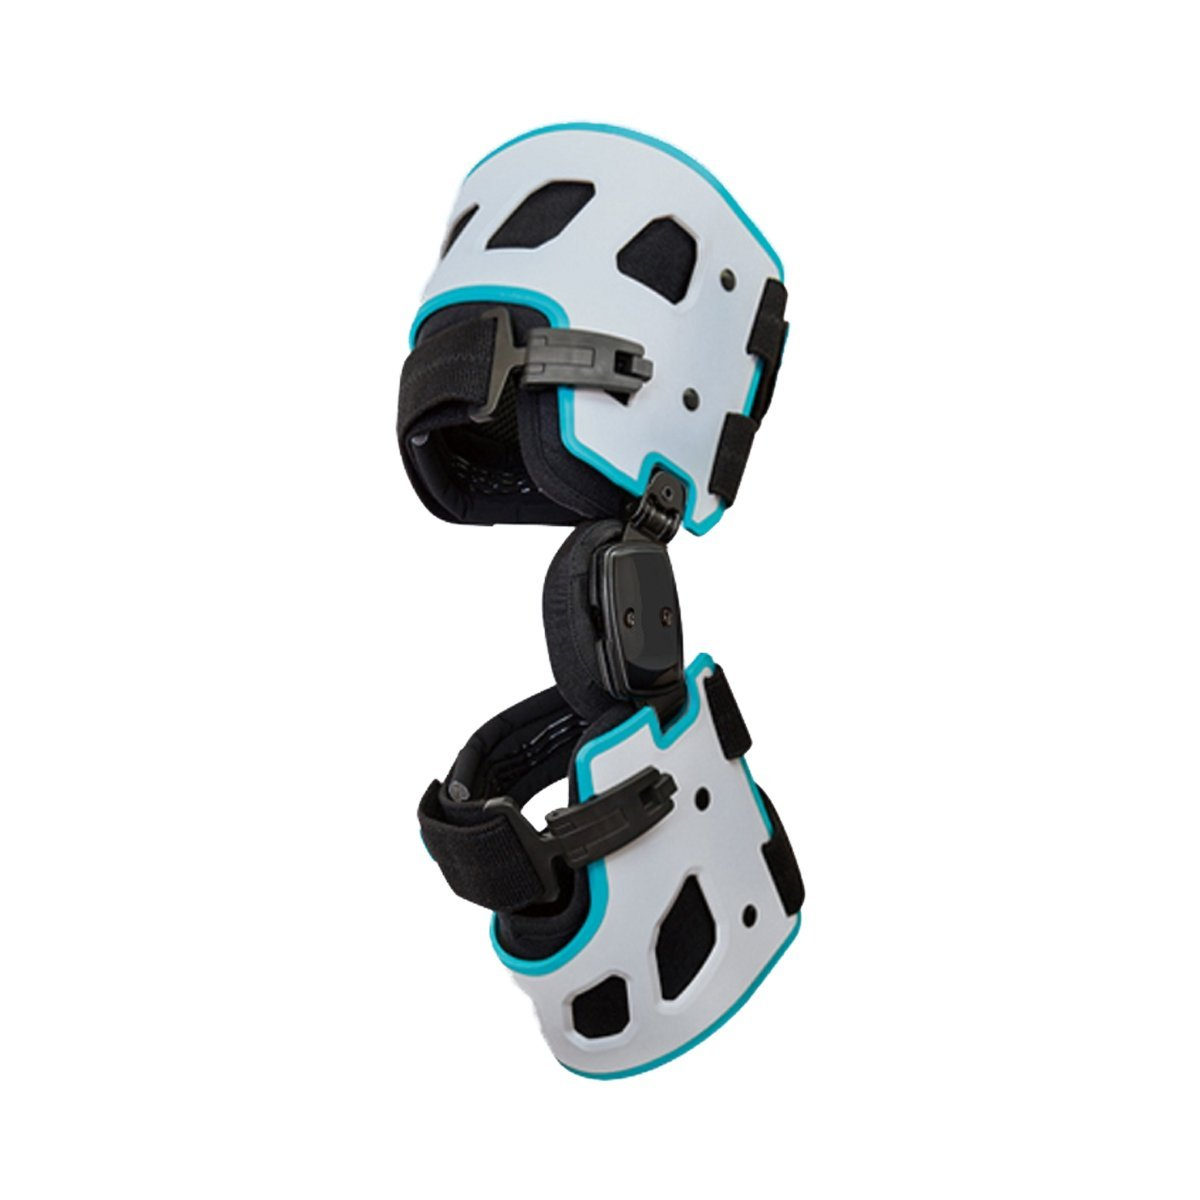 Orthomen OA Unloading Knee Brace for Arthritis, Cartilage Injury, and Bone-On-Bone Pain, Medial - Universal (Right) by Orthomen (Image #1)